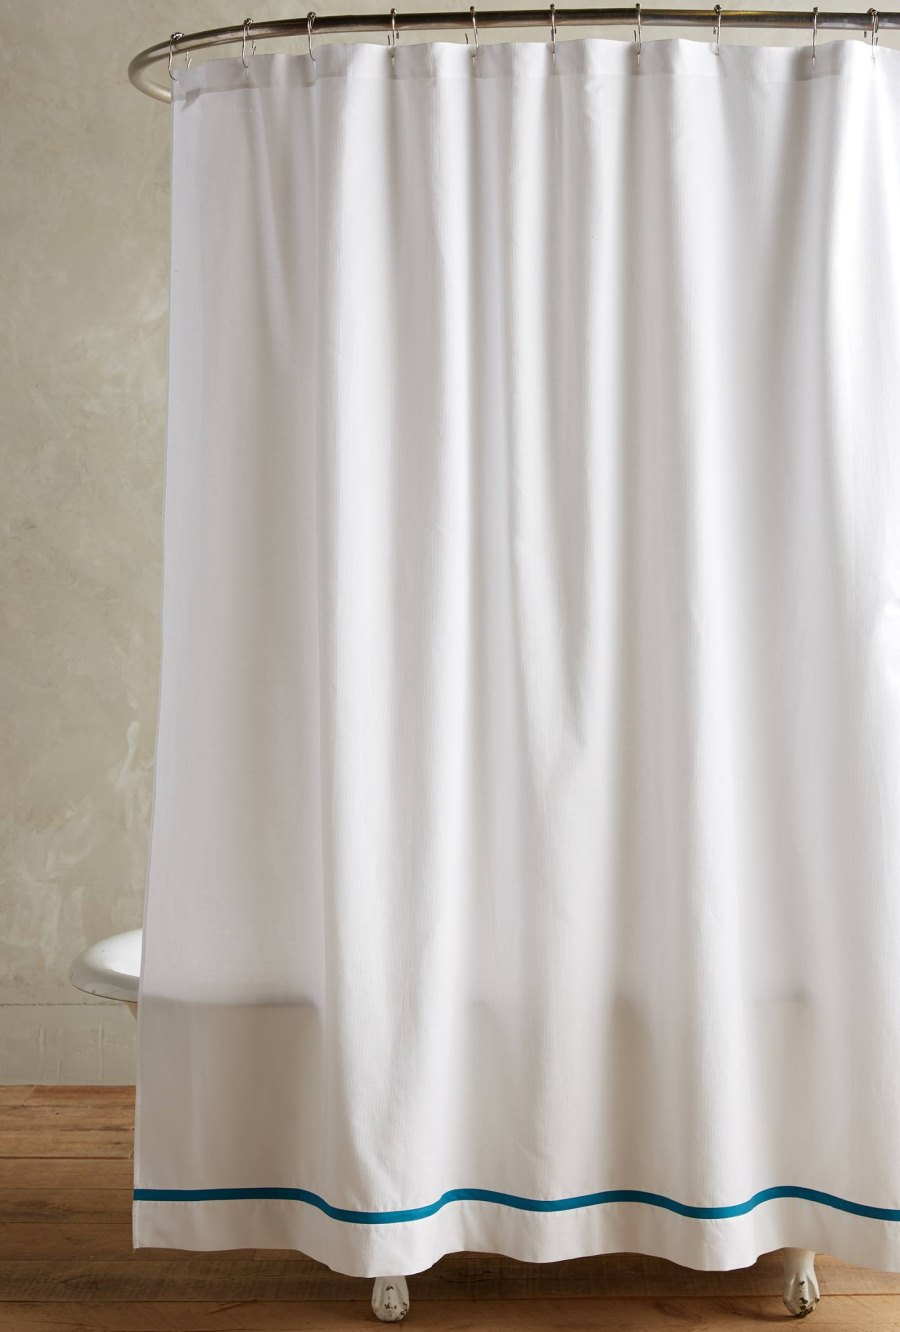 View In Gallery Pique Cotton Shower Curtain From Anthropologie